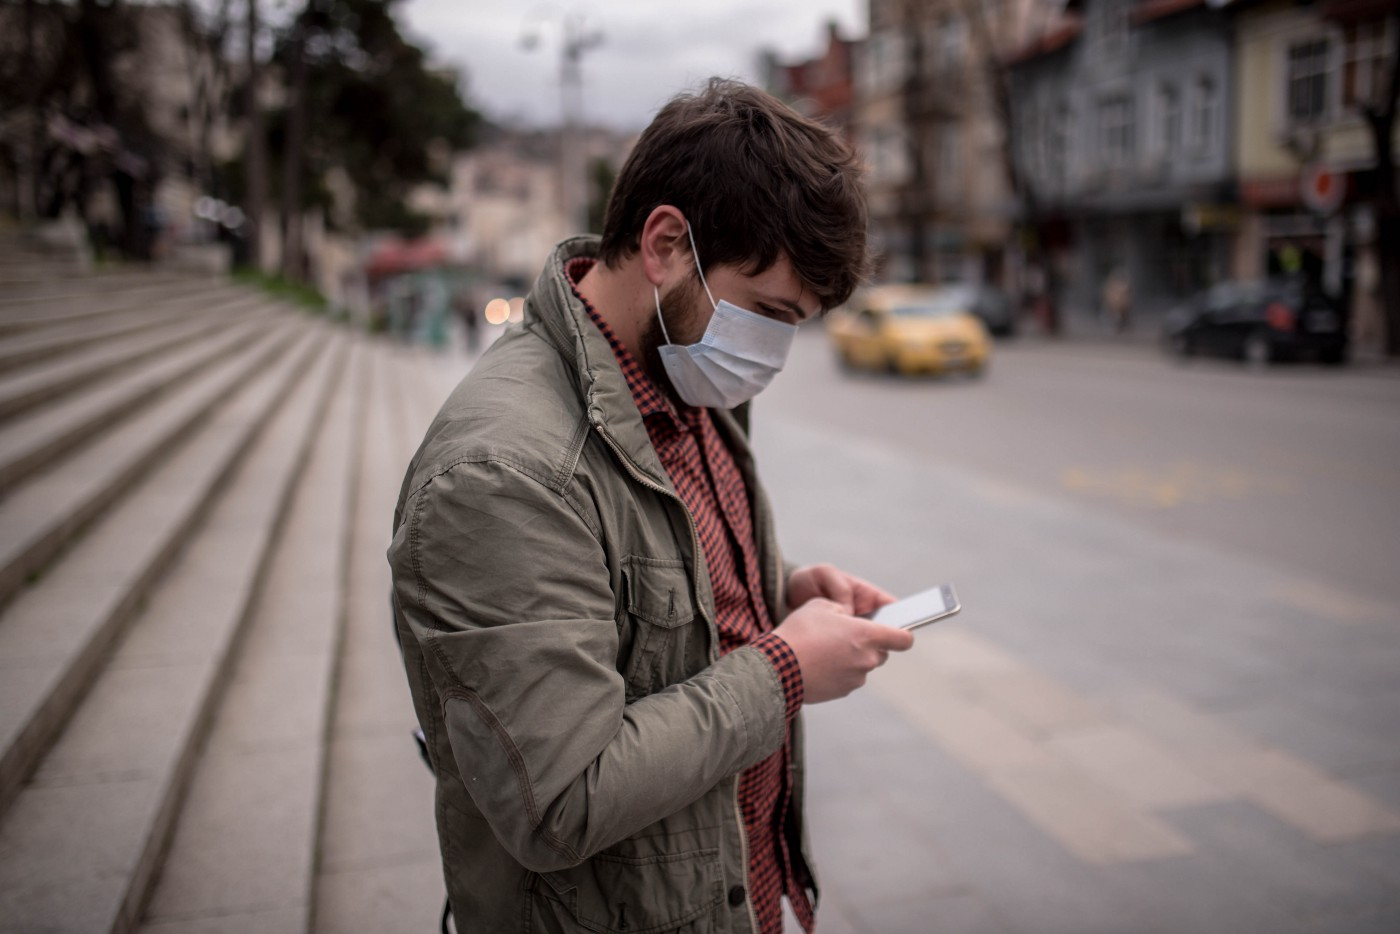 A man wearing a face mask types into his phone.